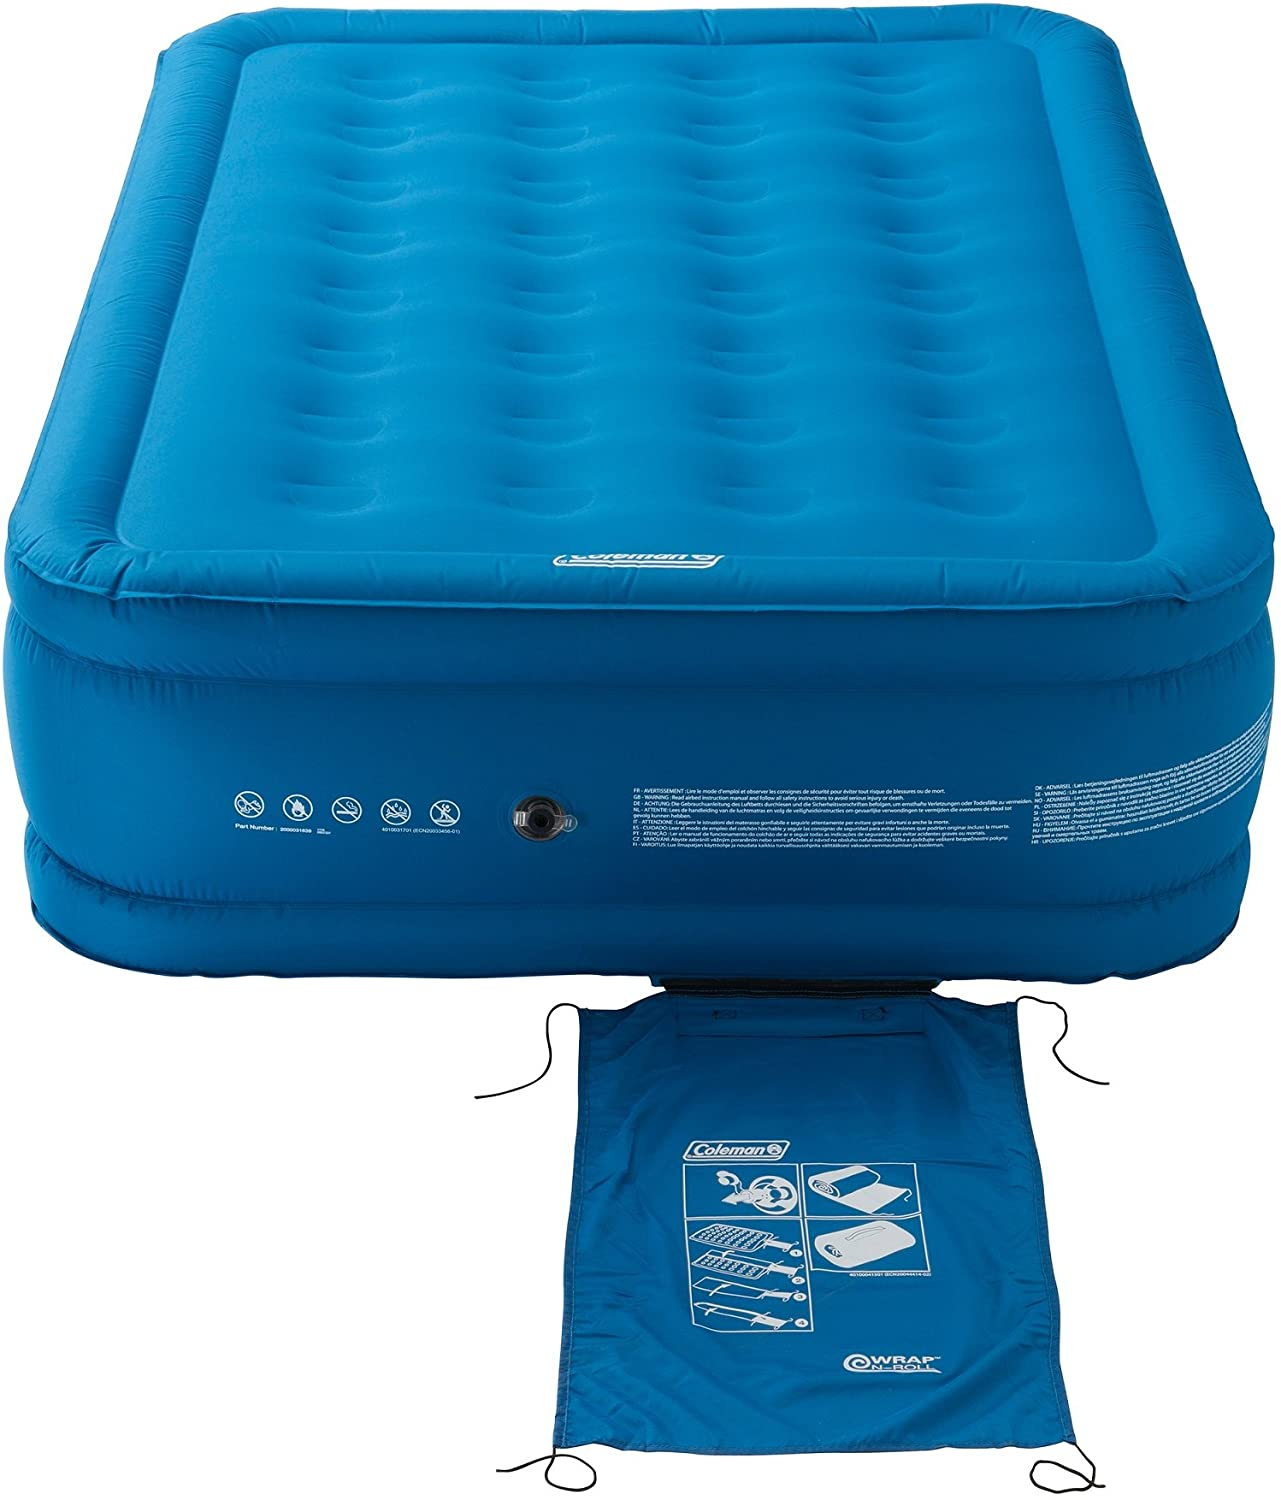 Flocked Single//Double Air Bed Camping bed Coleman Airbed Extra Durable Single//Double//Raised Double Heavy Duty Airbed Inflatable Air Mattress Comfort Blow Up Bed for Indoor and Outdoor Use